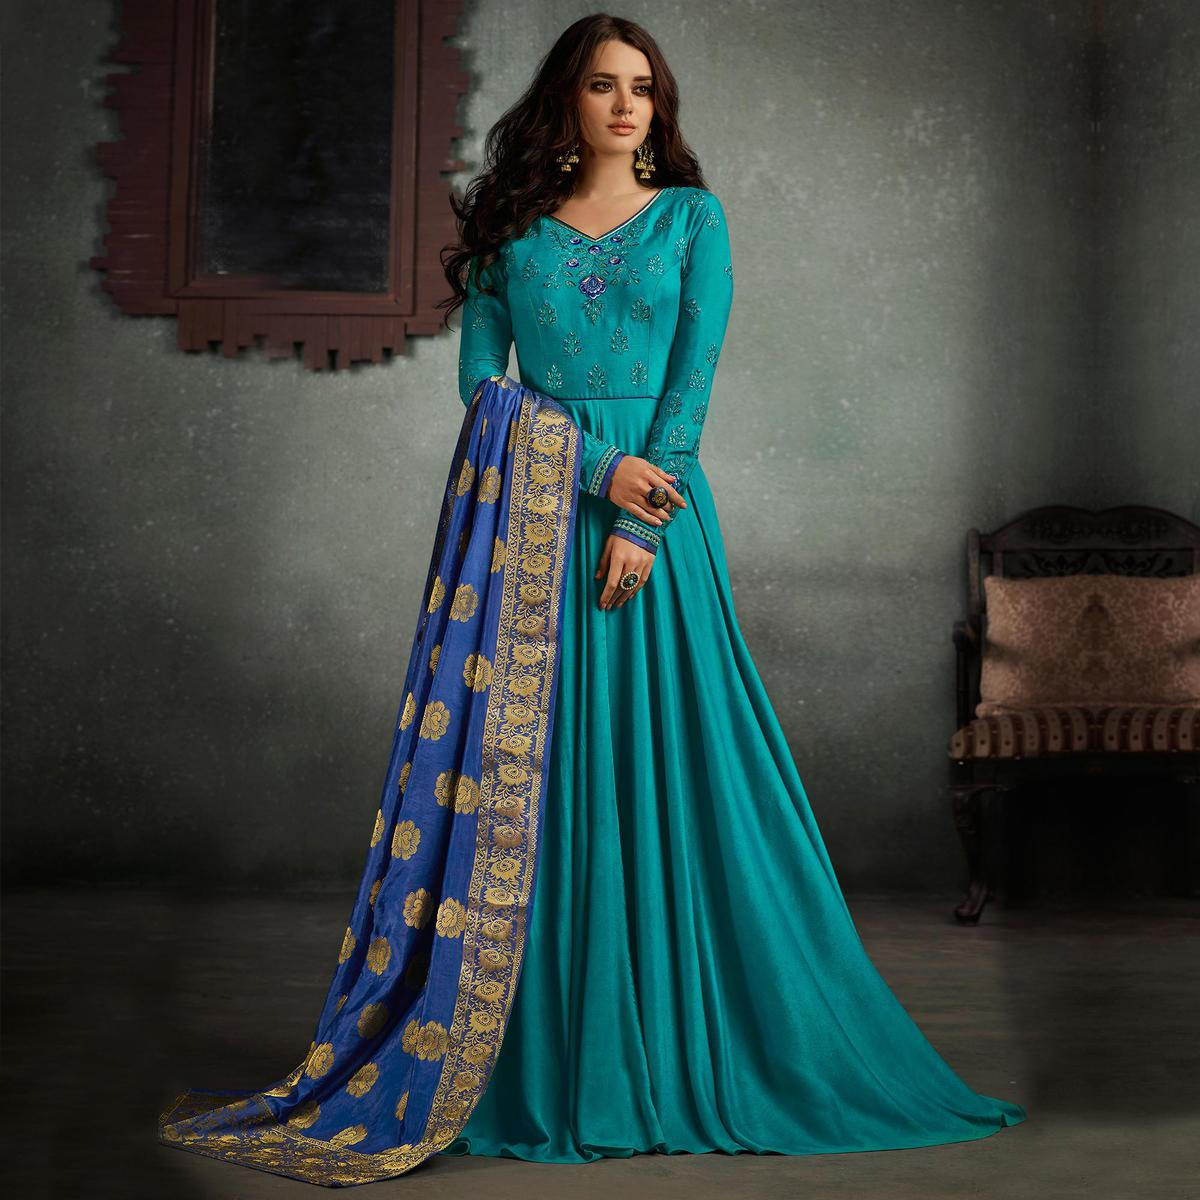 977d5f7fc8962 Buy Attractive Blue Designer Embroidered Pure Rayon Anarkali Gown With  Banarasi Silk Dupatta for womens online India, Best Prices, Reviews -  Peachmode